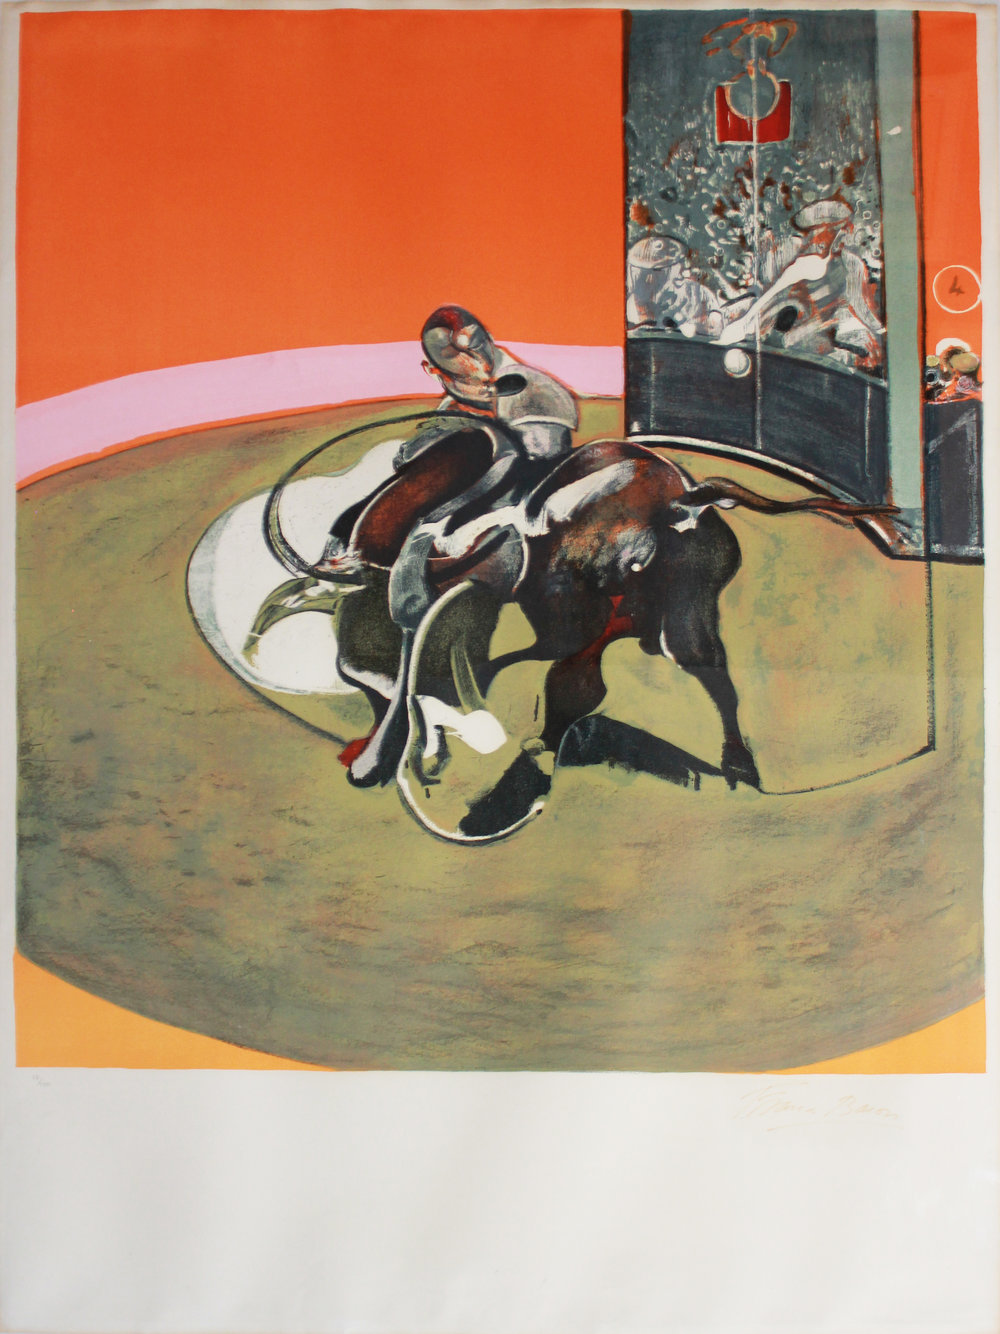 Francis Bacon   Study for a Bullfight no. 1 , 1971 Lithograph on Arches Signed in felt tip pen on recto, signature faded, numbered in pencil From the numbered edition of 150 Published by the Musée du Grand Palais Image: 50 x 45 inches; Sheet: 62.5 x 47 inches; Framed: 69 x 53 inches Estimate: $60,000/$80,000